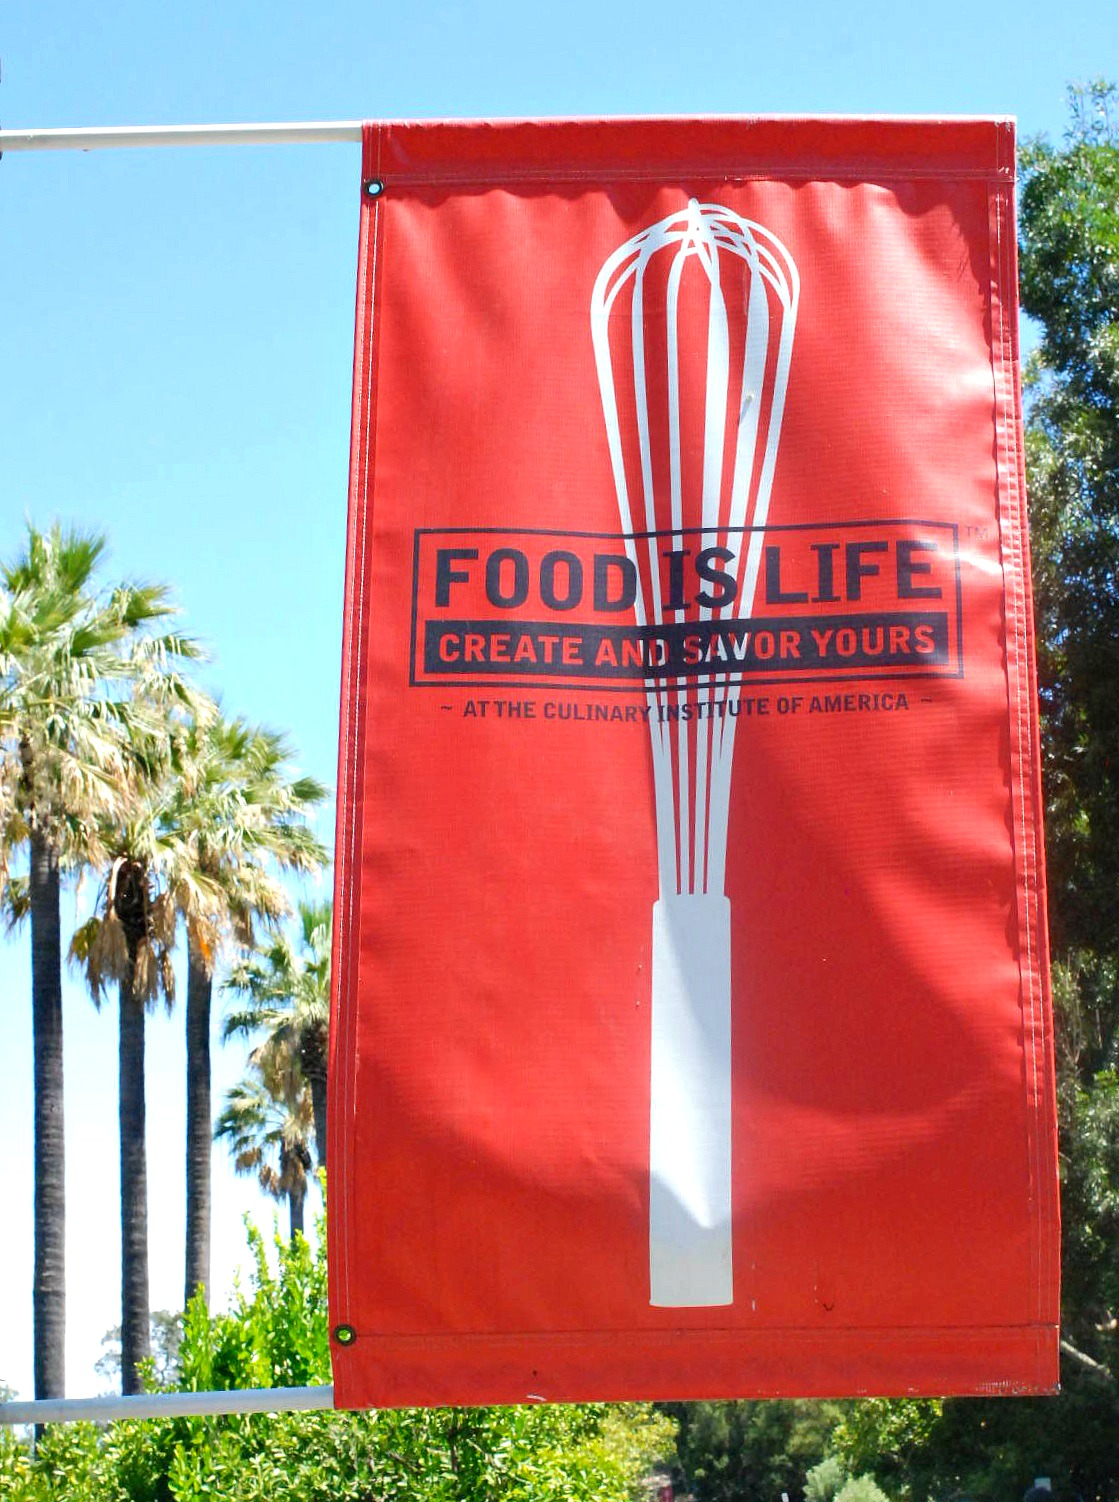 Culinary Institute of America food is life